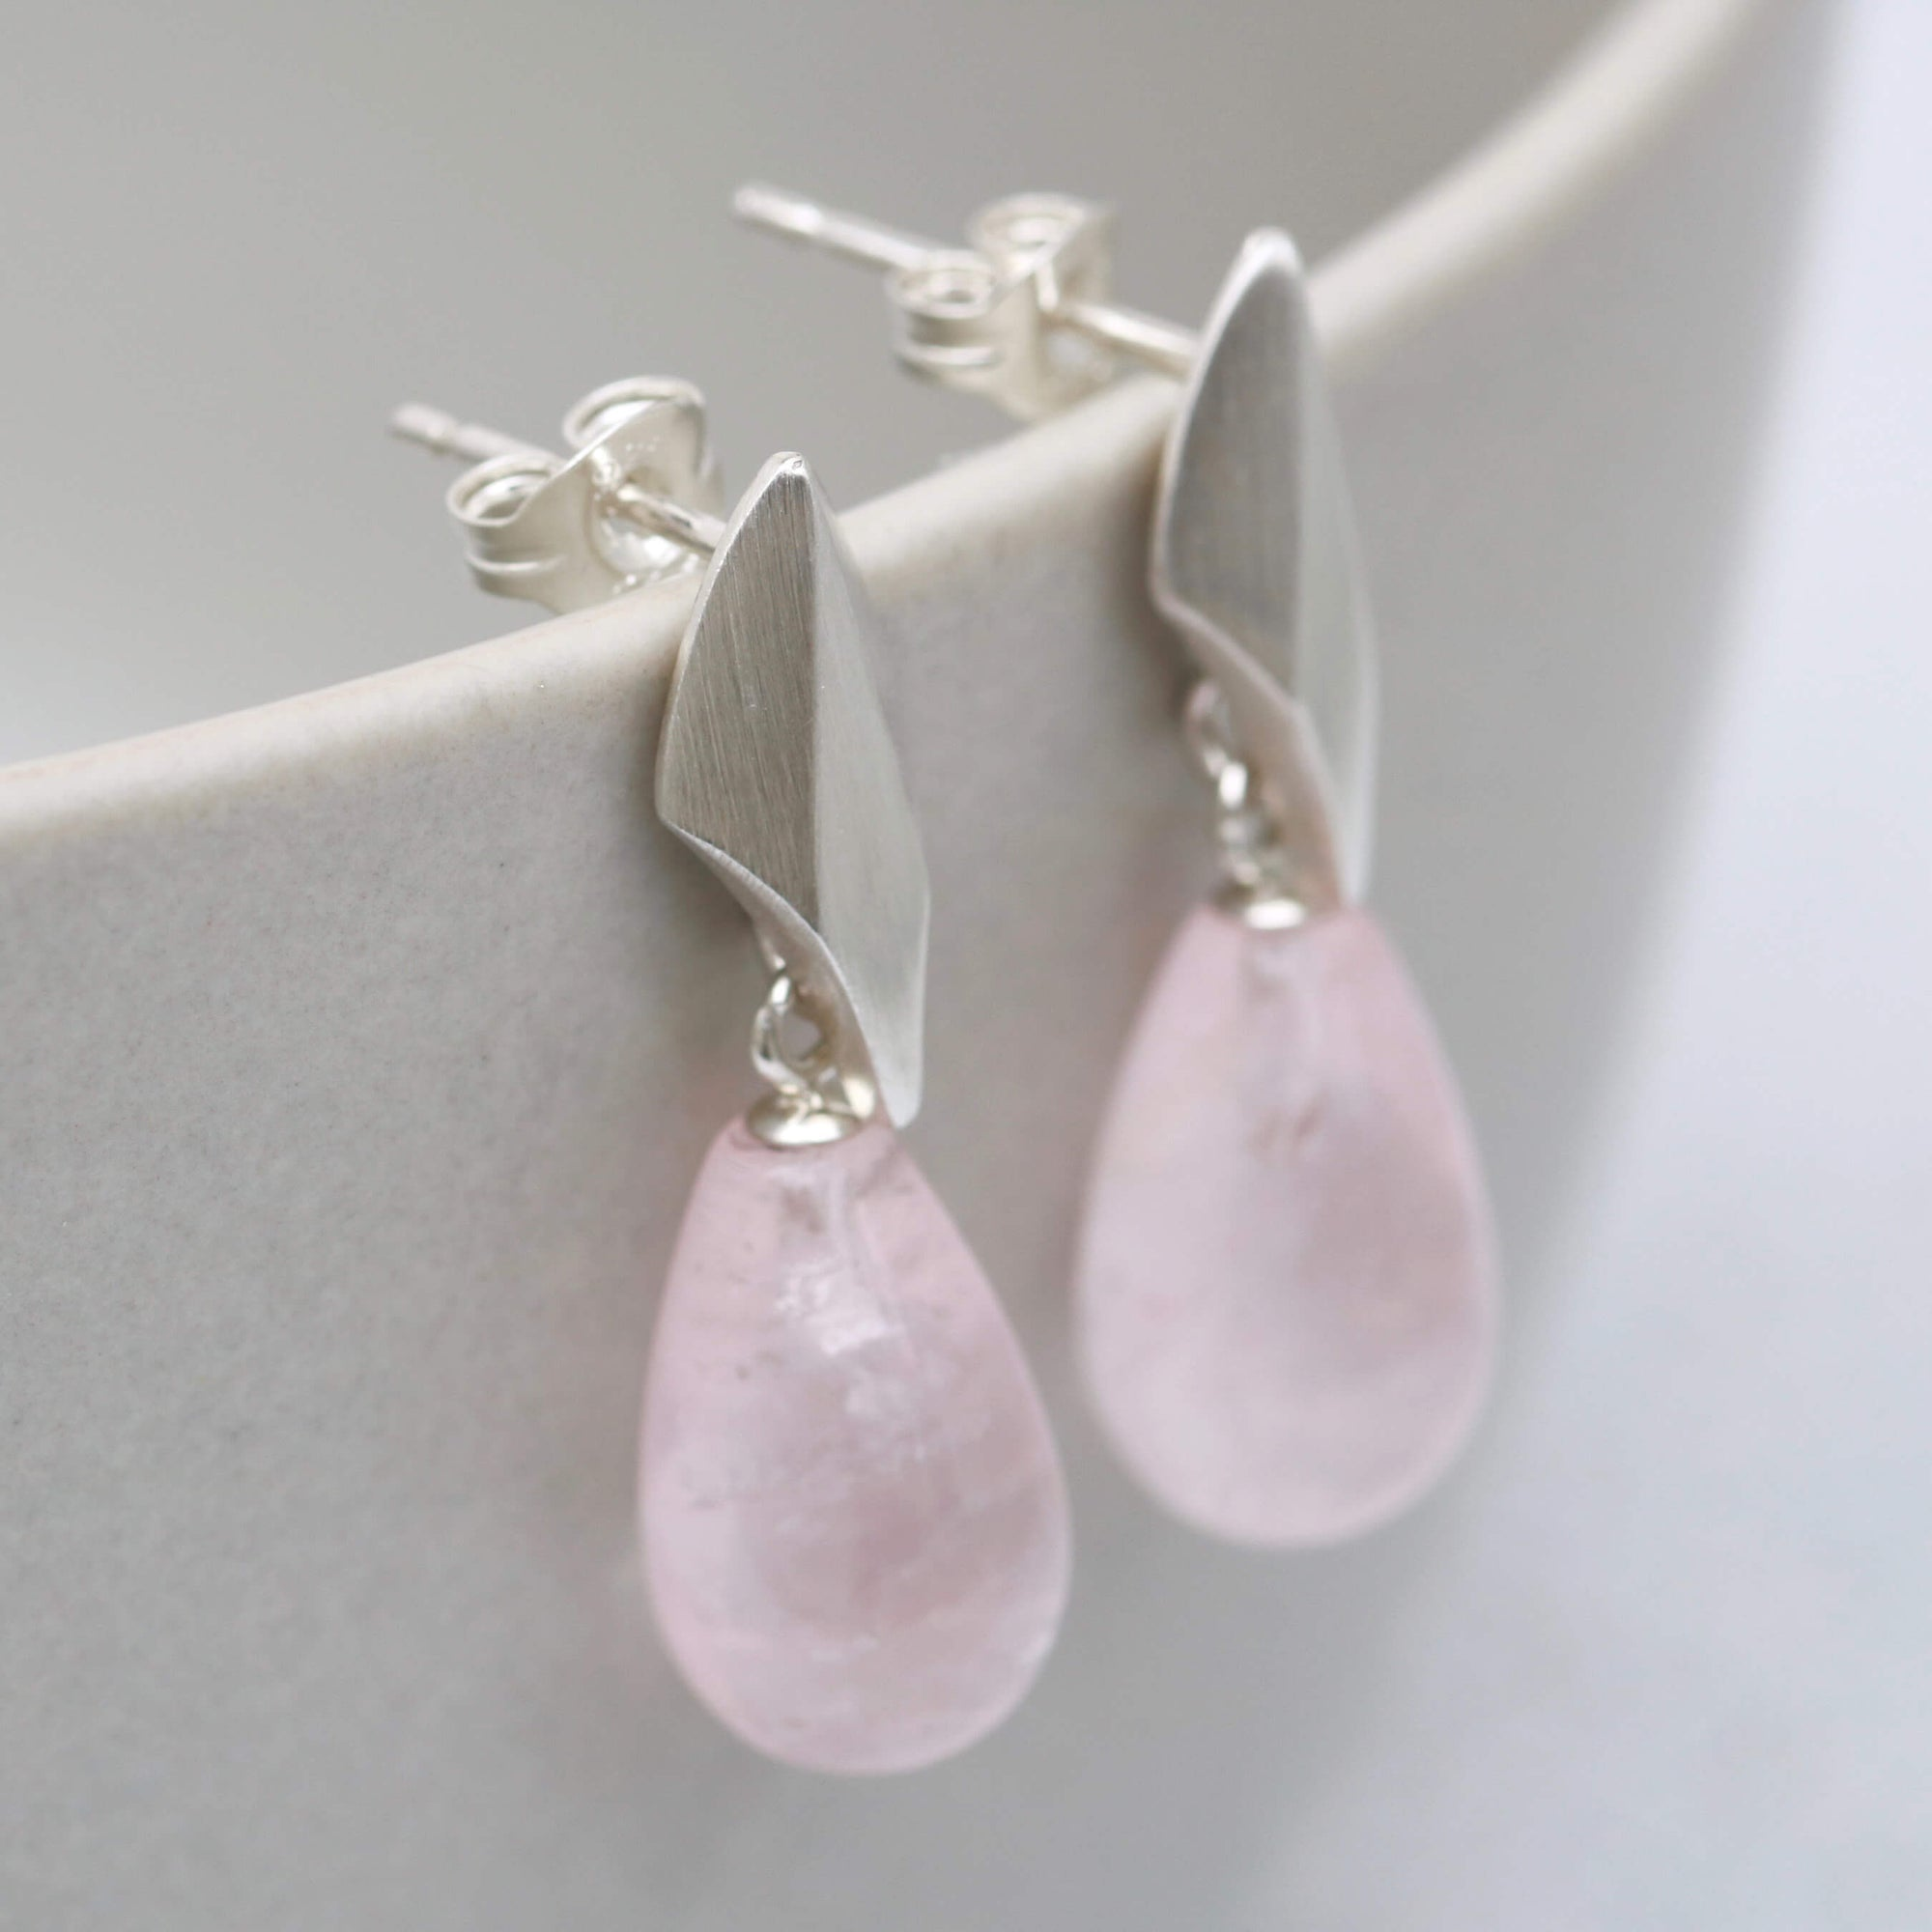 Silver Deco Dropper Earrings with Rose Quartz